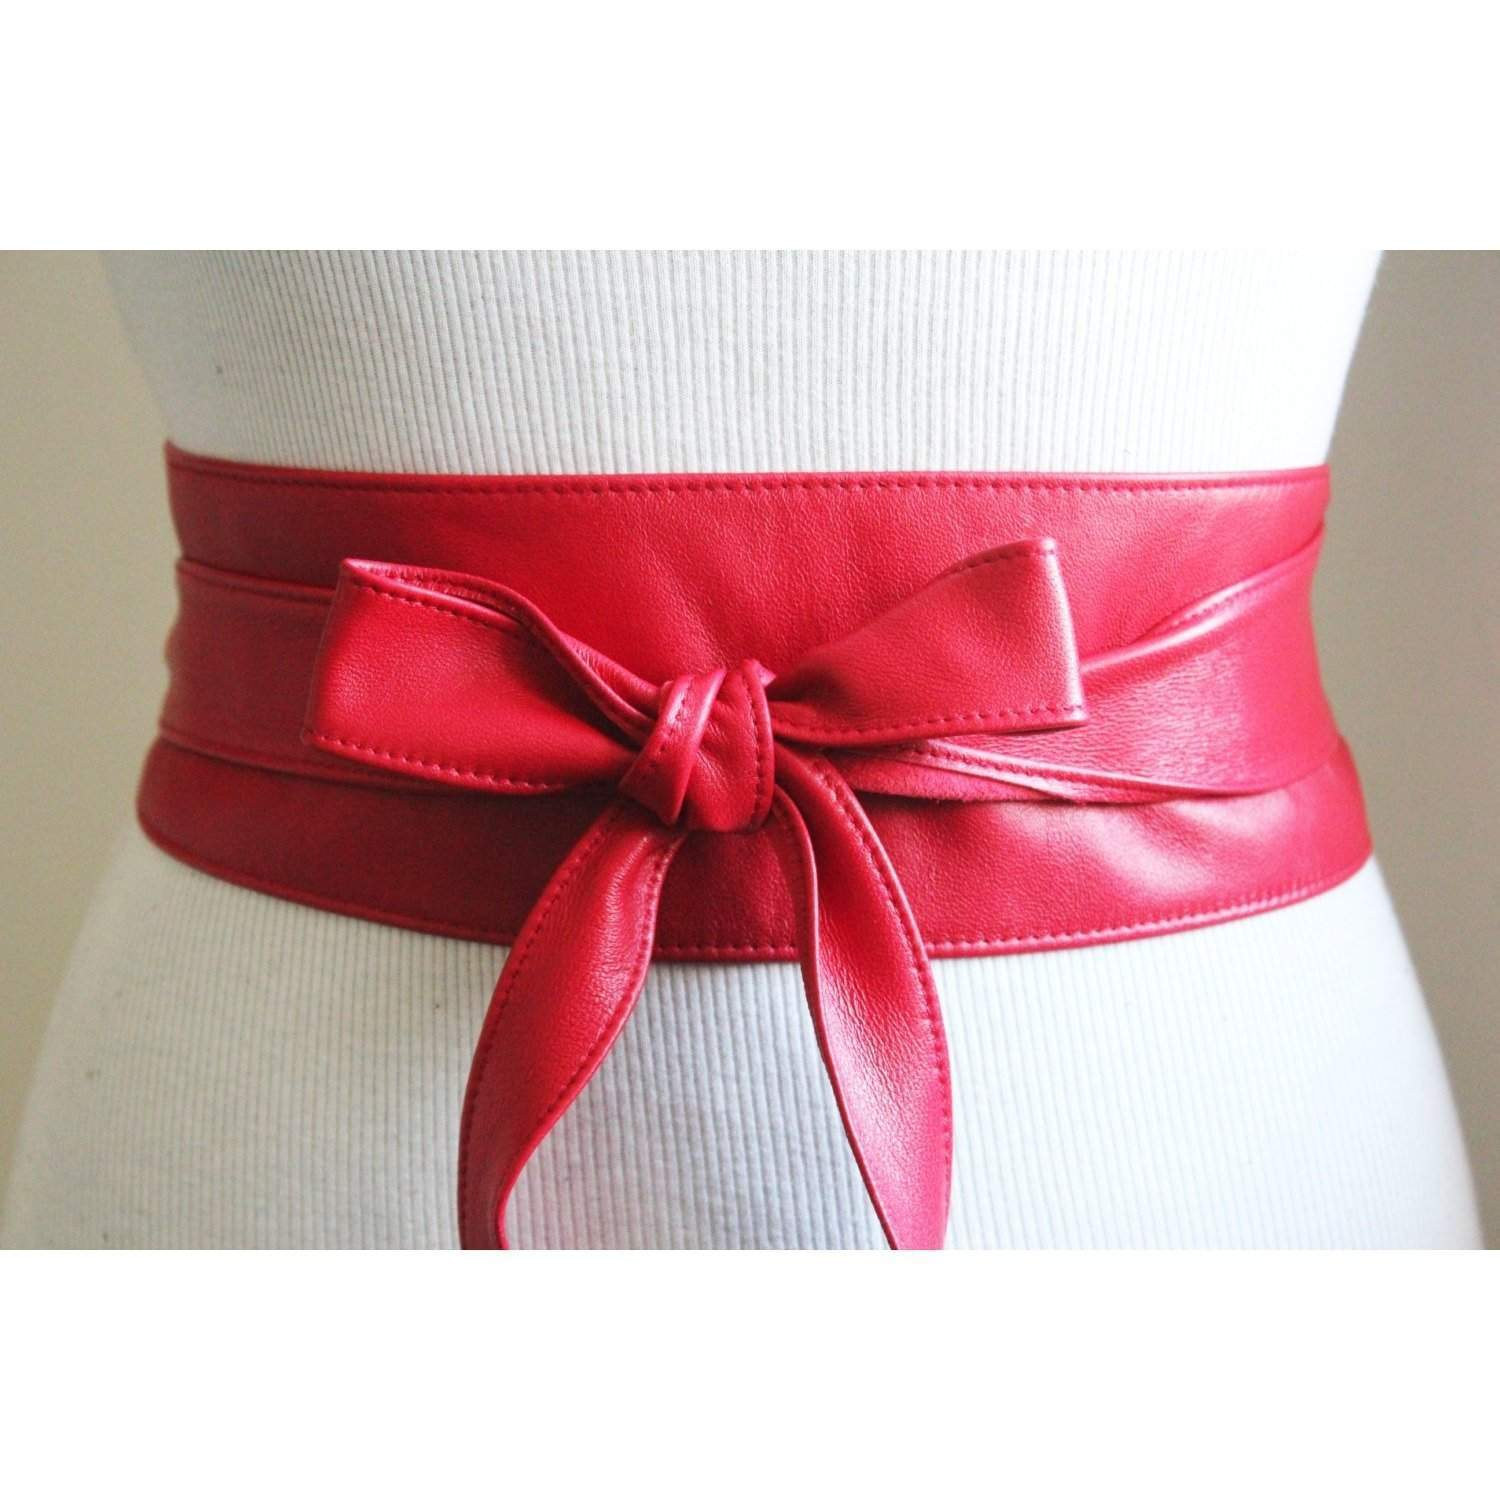 Red Nappa Leather Obi Belt - loveyaayaa